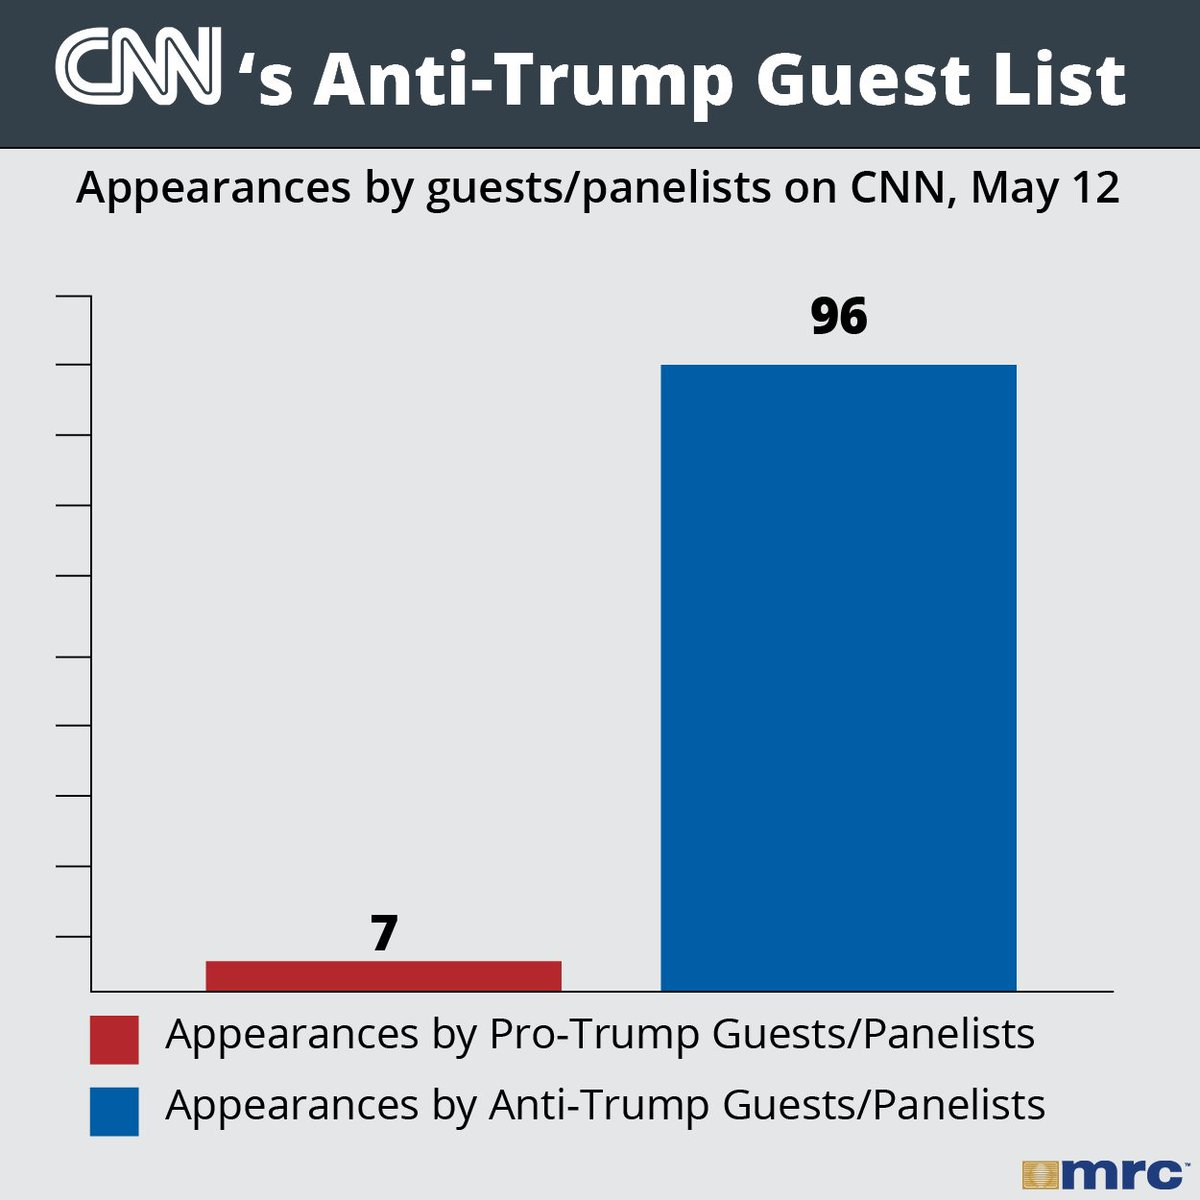 CNN claims to be unbiased, but they're only interested in letting one side speak. https://t.co/Of6Cu5mI6p